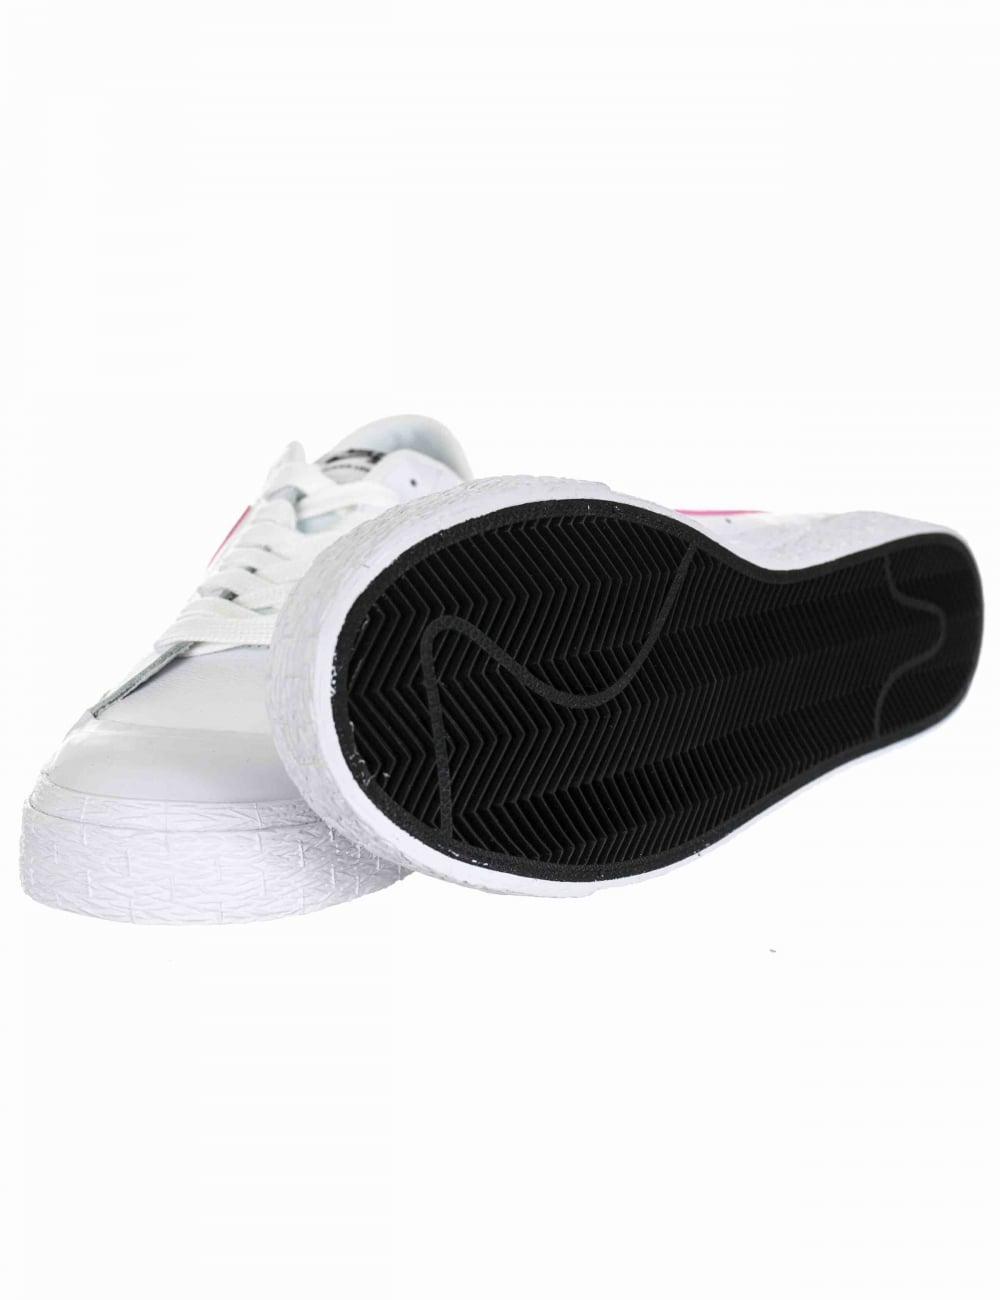 new style 3b684 9bad8 Blazer Zoom Low GT Shoes - White/Prism Pink